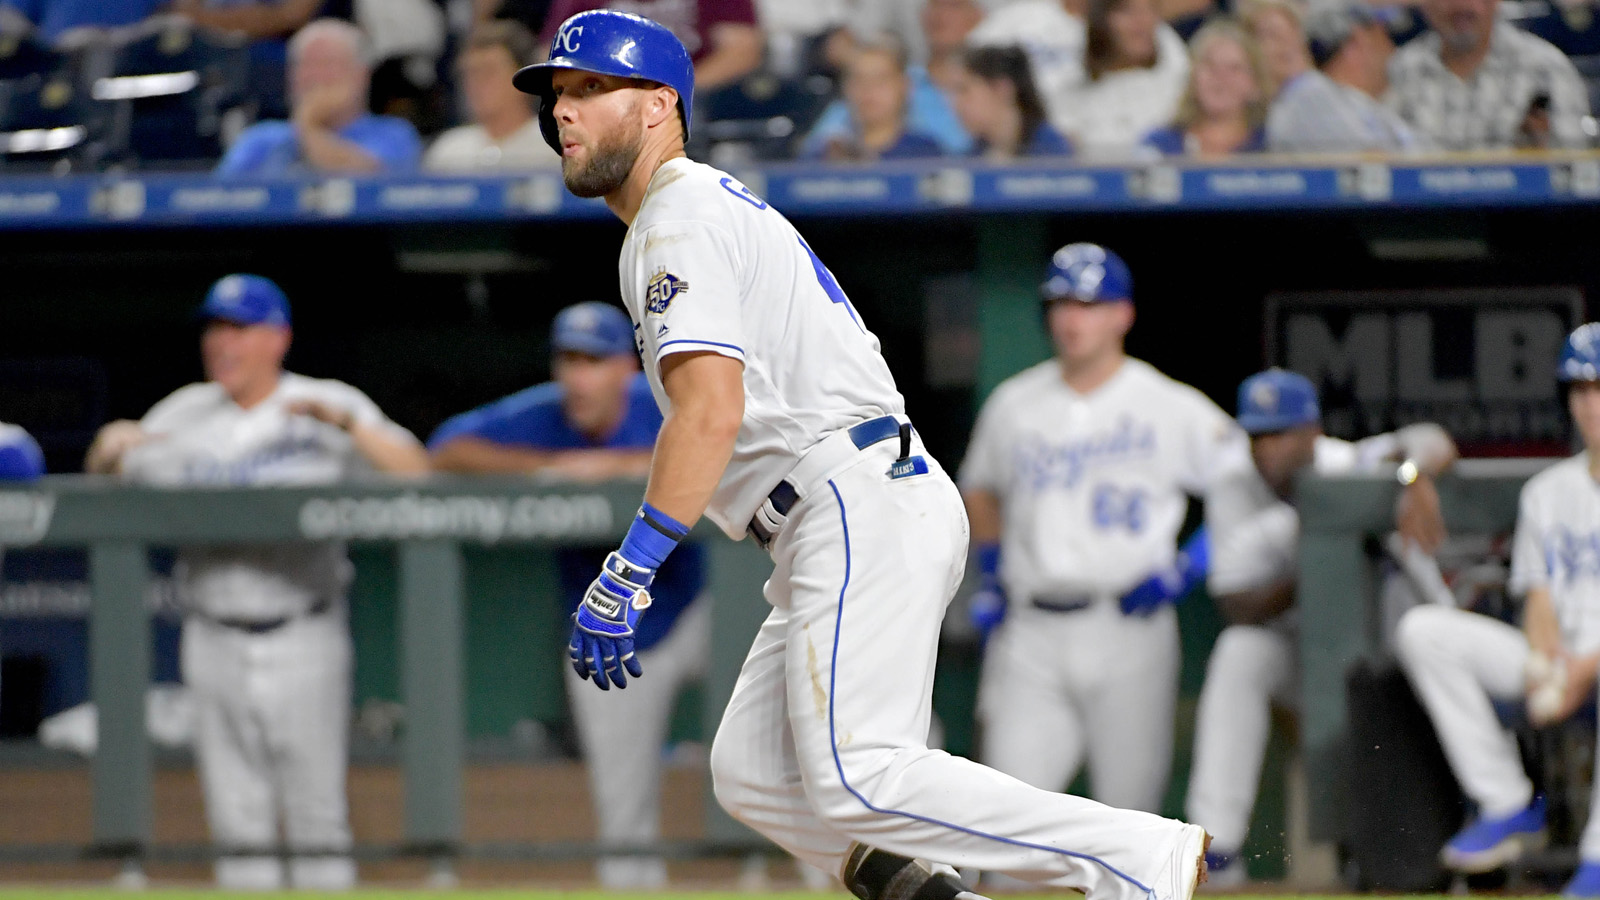 Gordon drives in five in Royals' 10-3 win over Twins